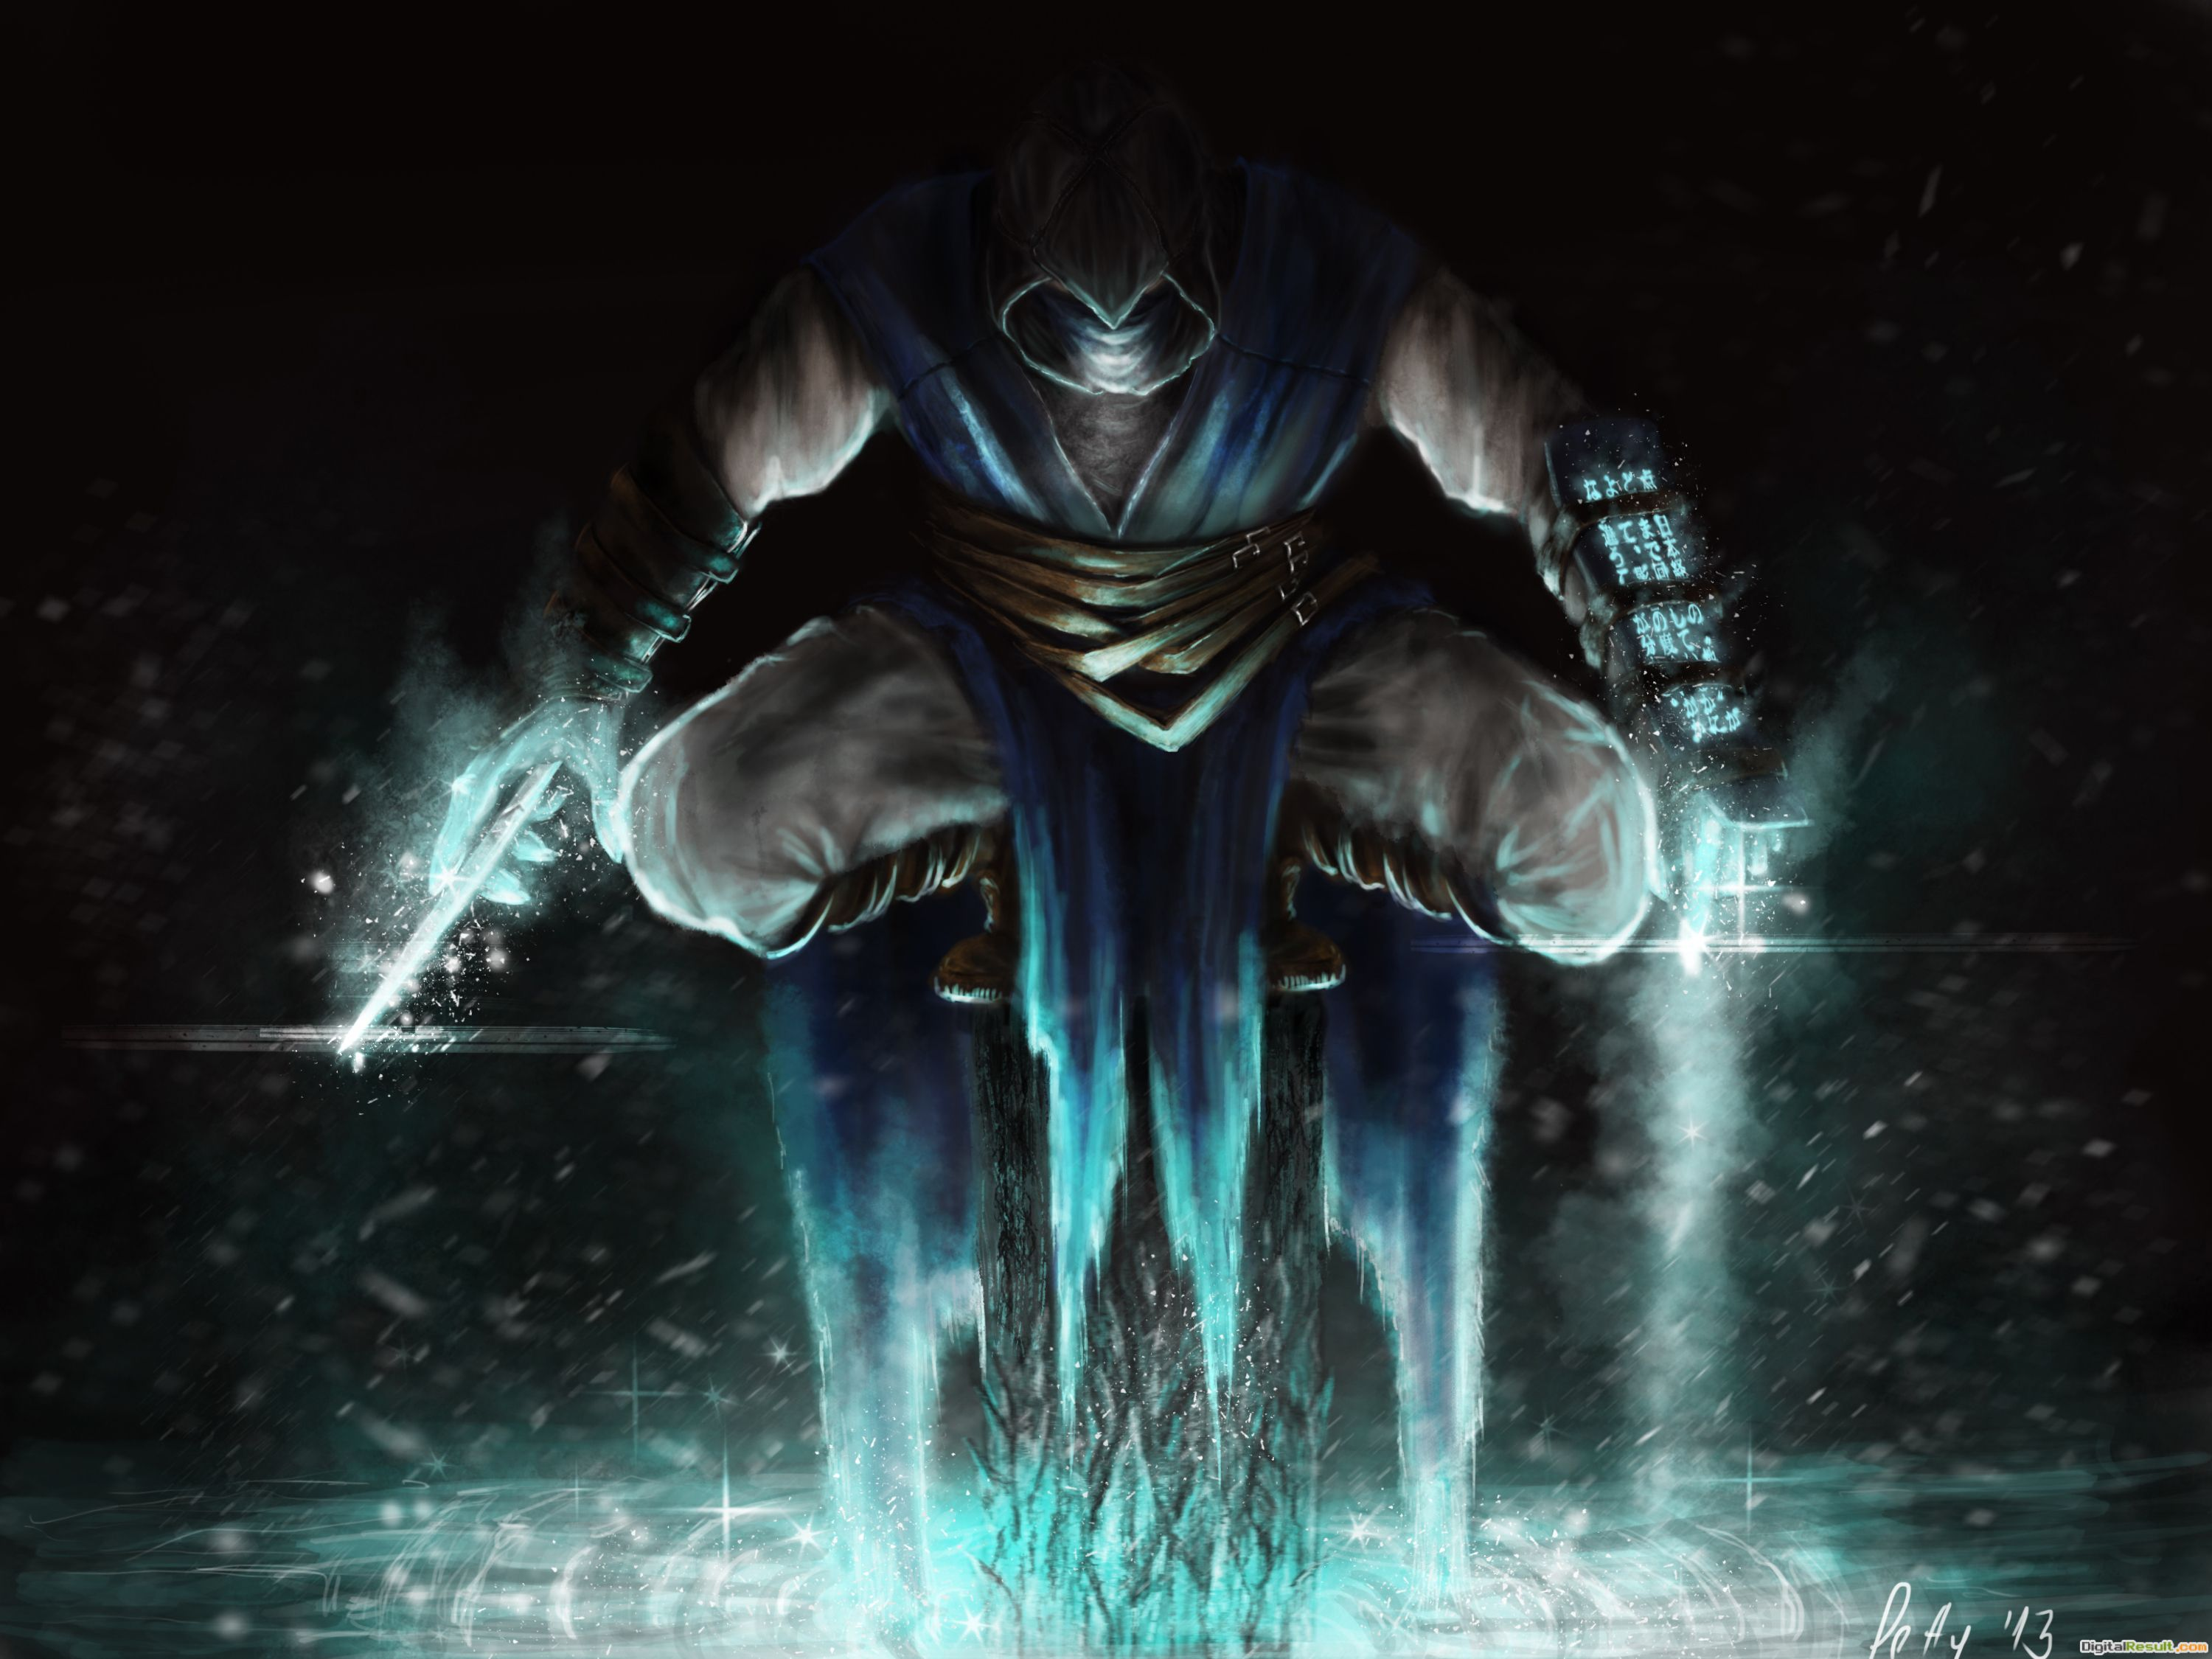 Mortal kombat, sub zero, art, play, sitting, ice, cold wallpapers 1624